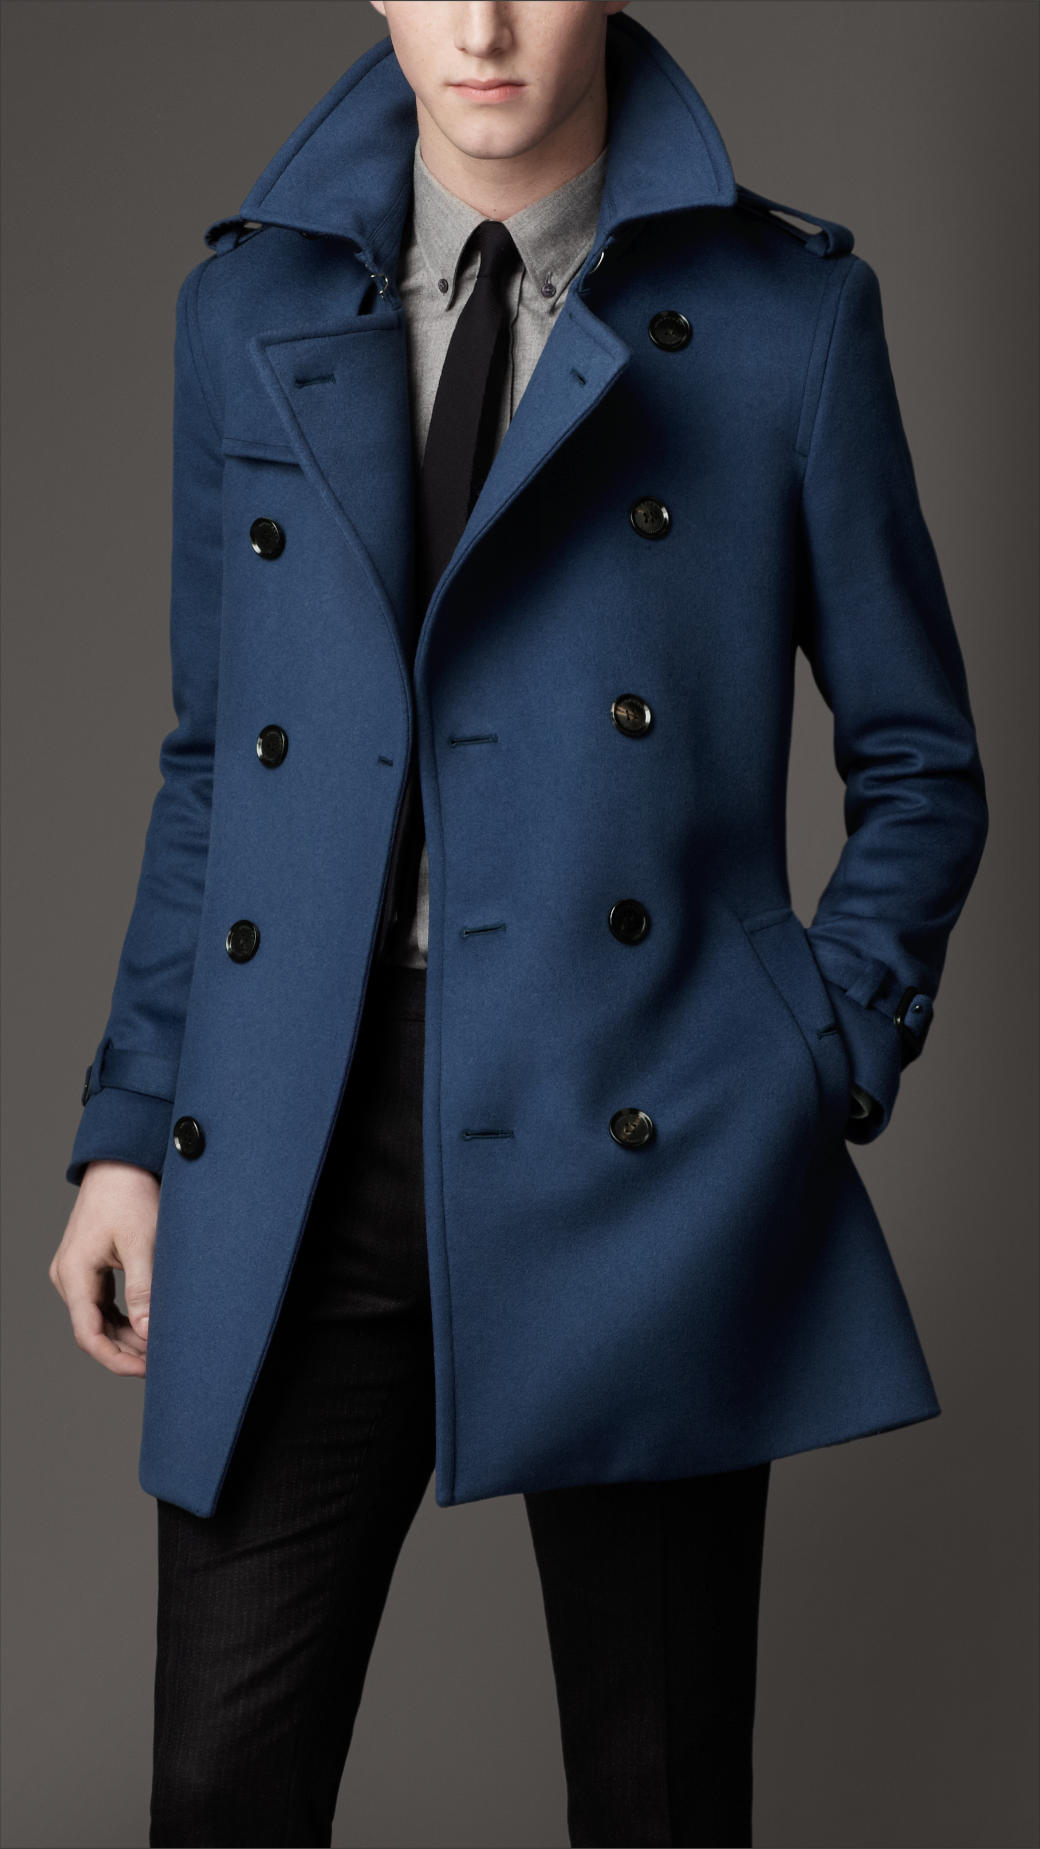 Men's coats & jackets blue A style essential in every man's wardrobe, our collection of men's coats include everything from classic blazers and trench coats, to leather jackets .